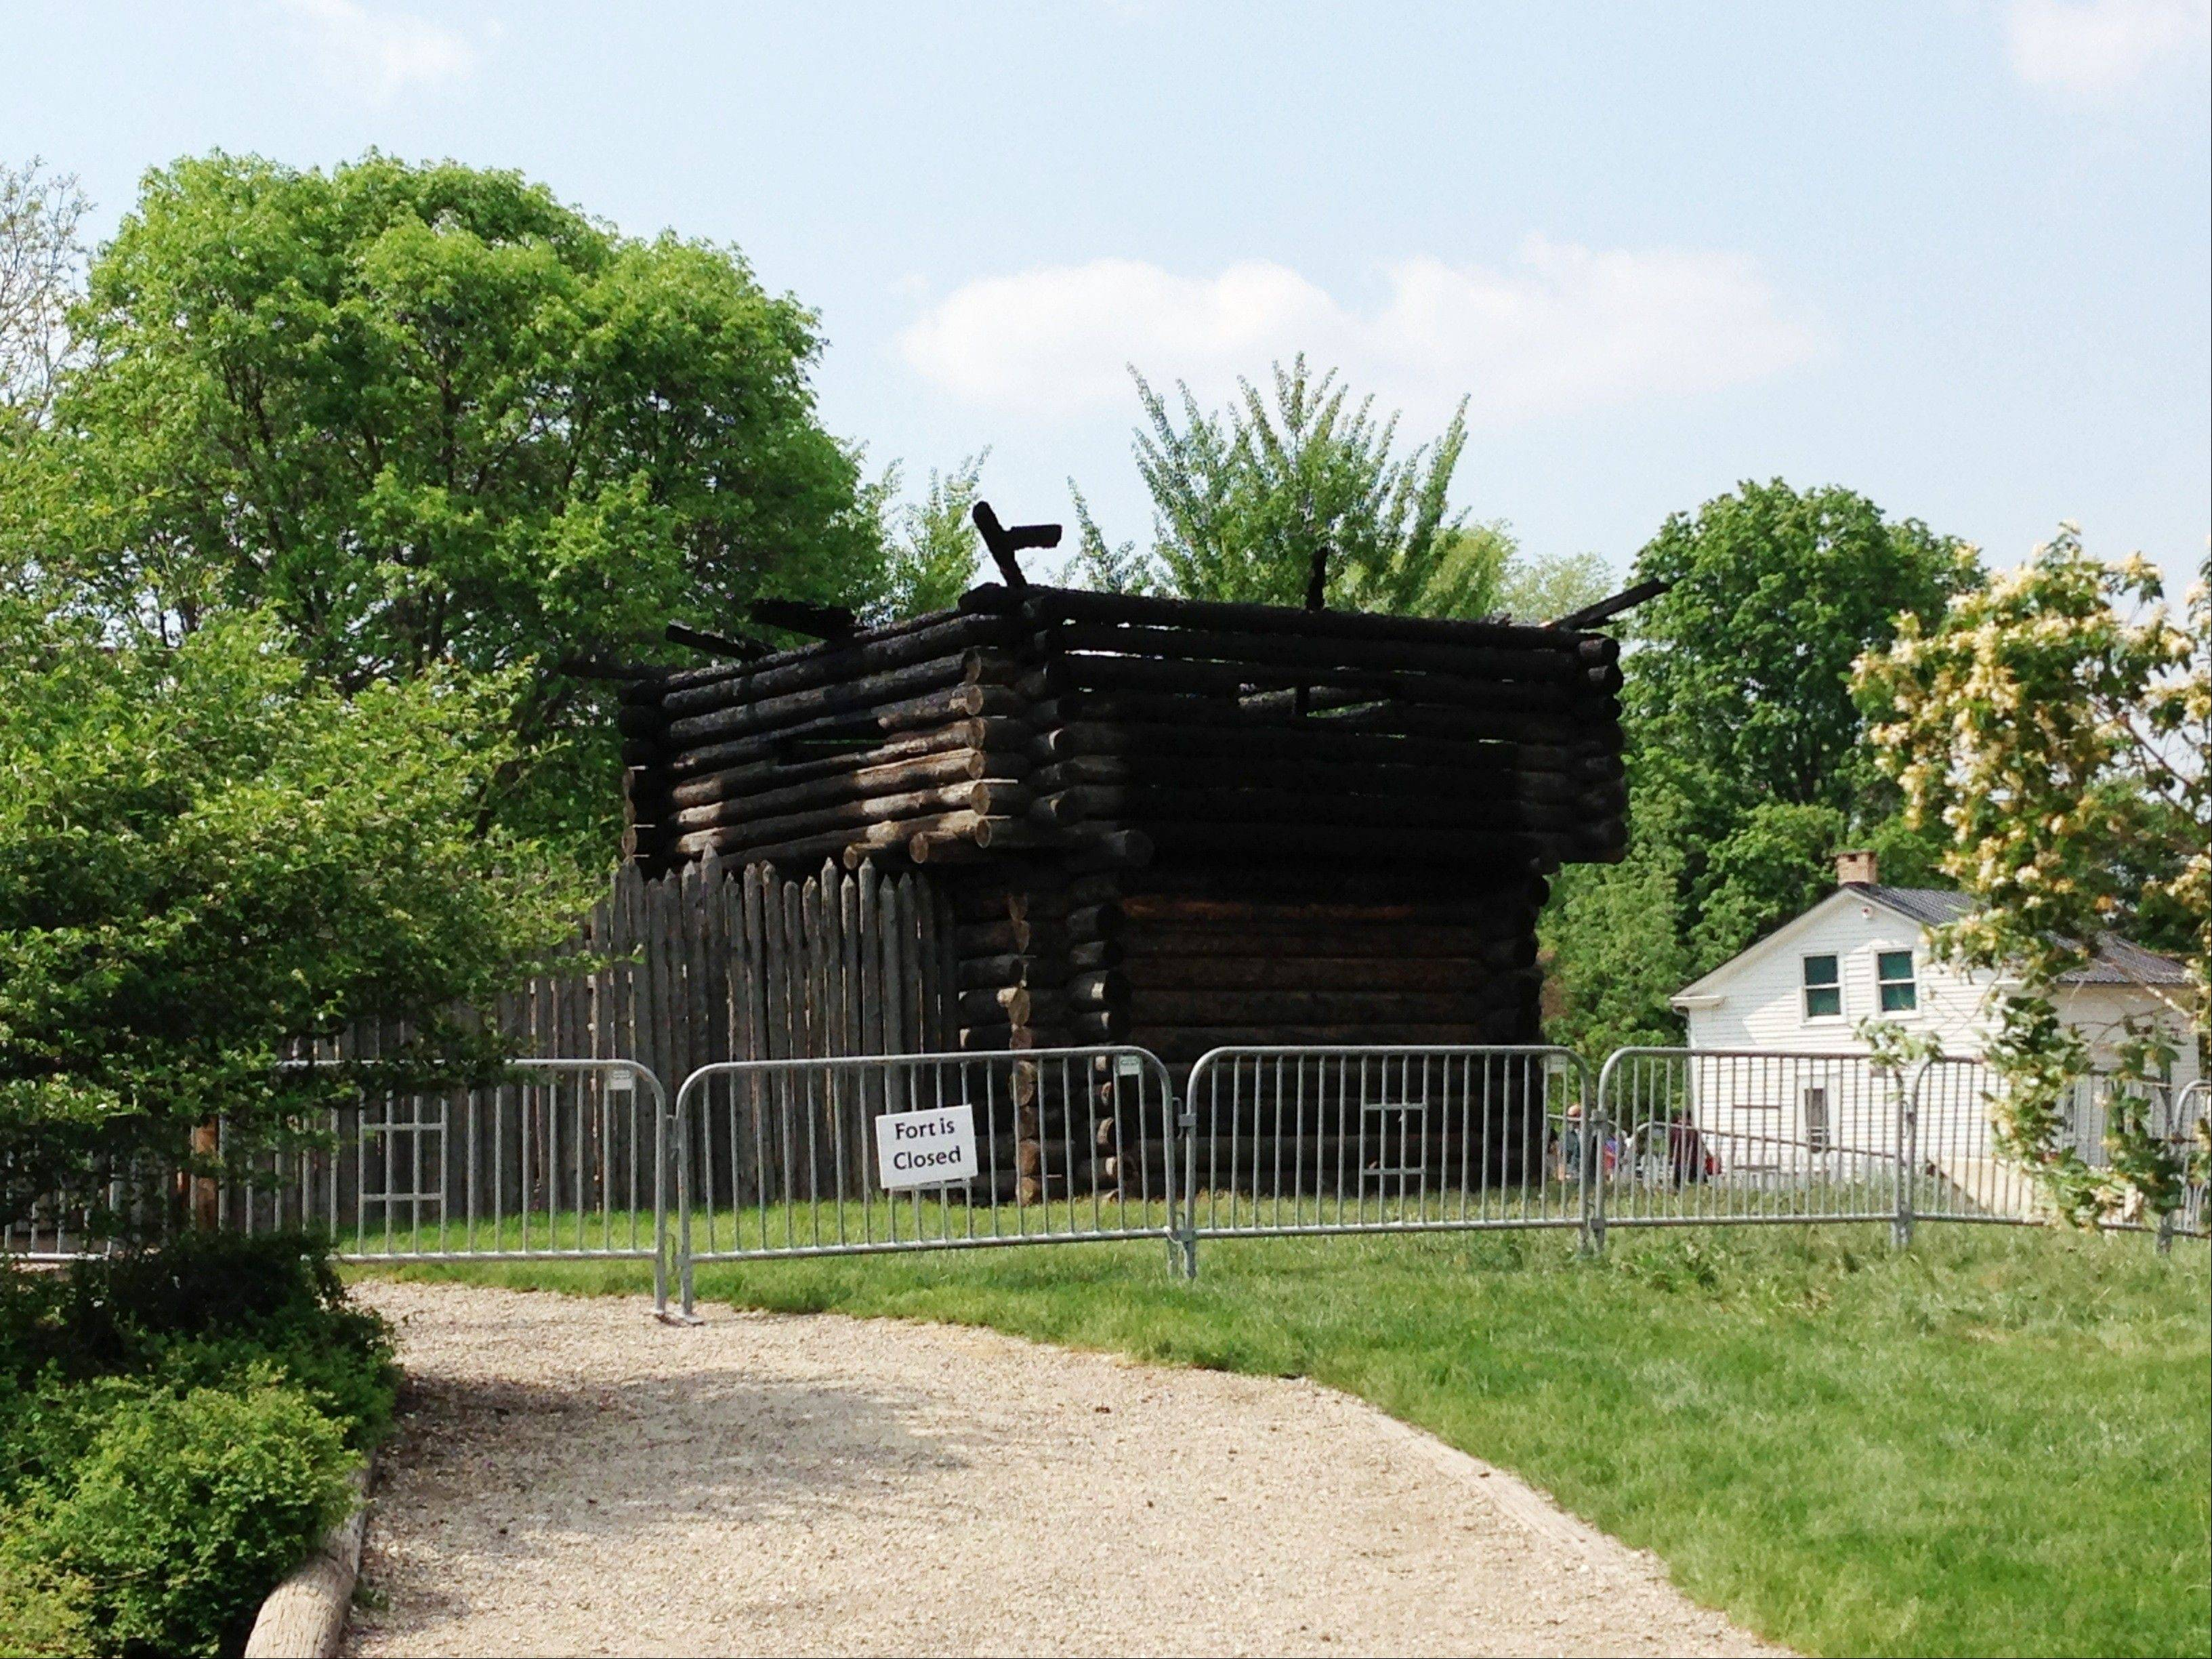 Fire damages reconstructed fort at Naper Settlement museum